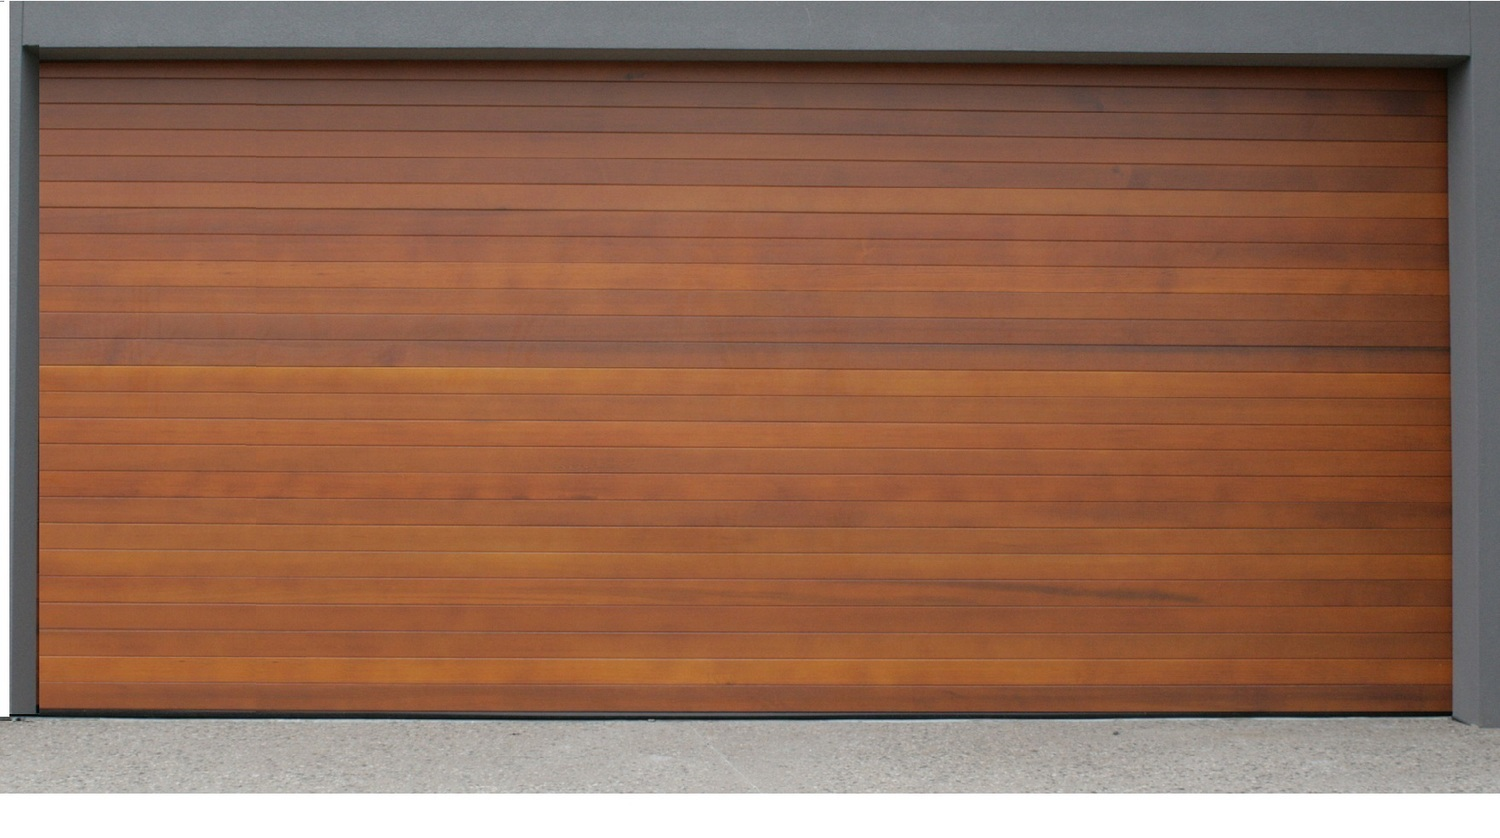 Western red cedar 86mm tongue & groove boards (click on image to enlarge)